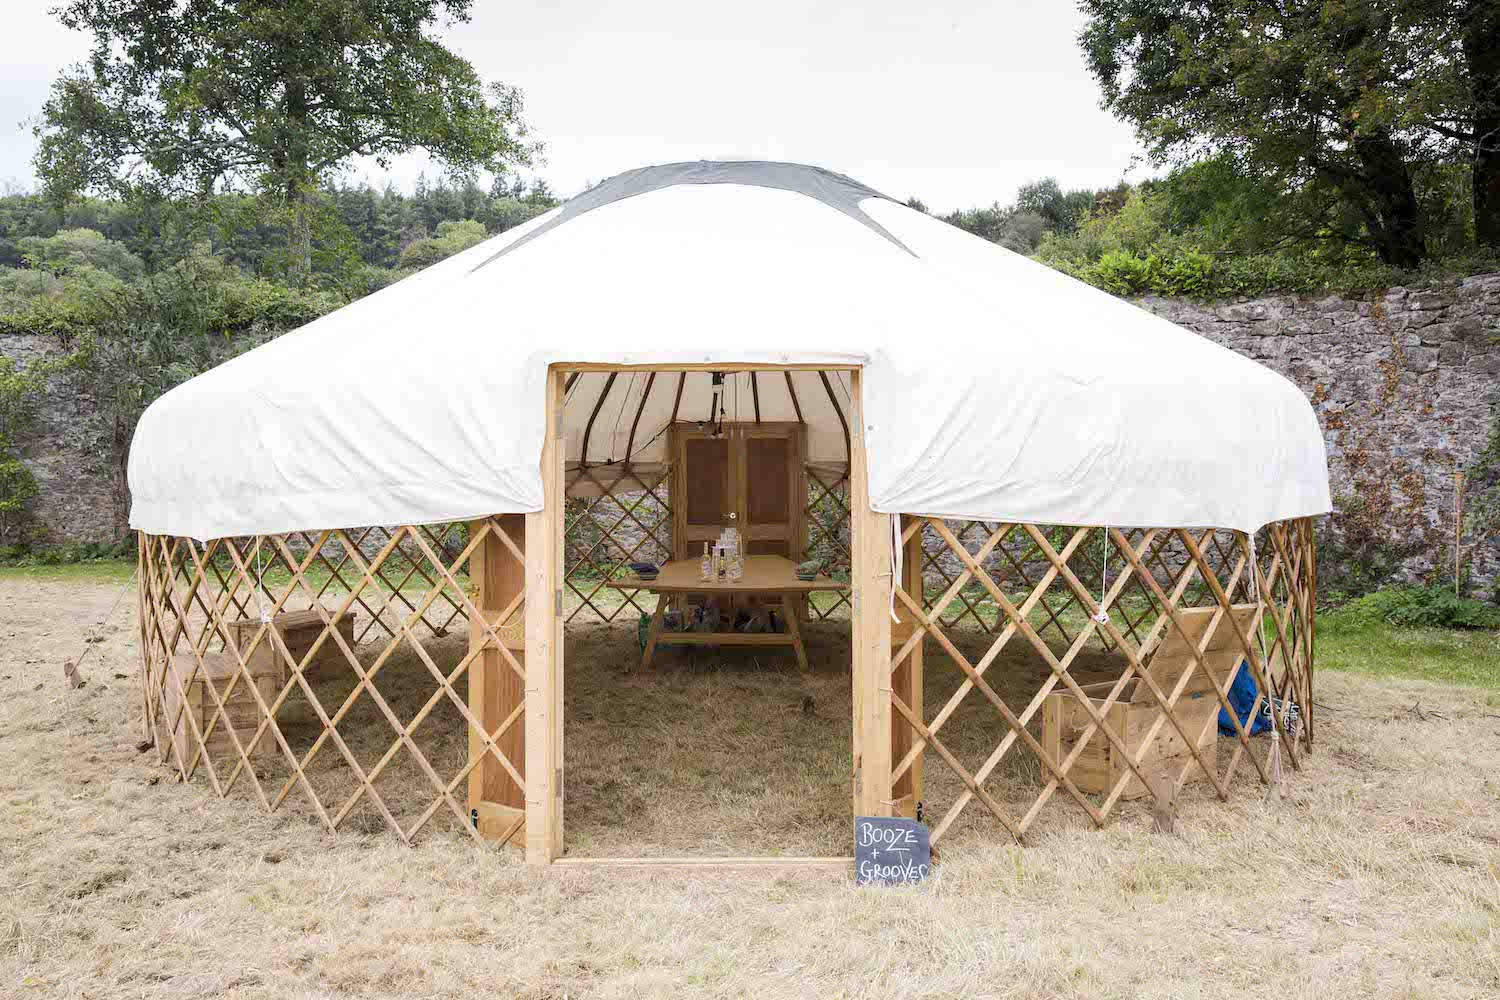 yurt with open sides